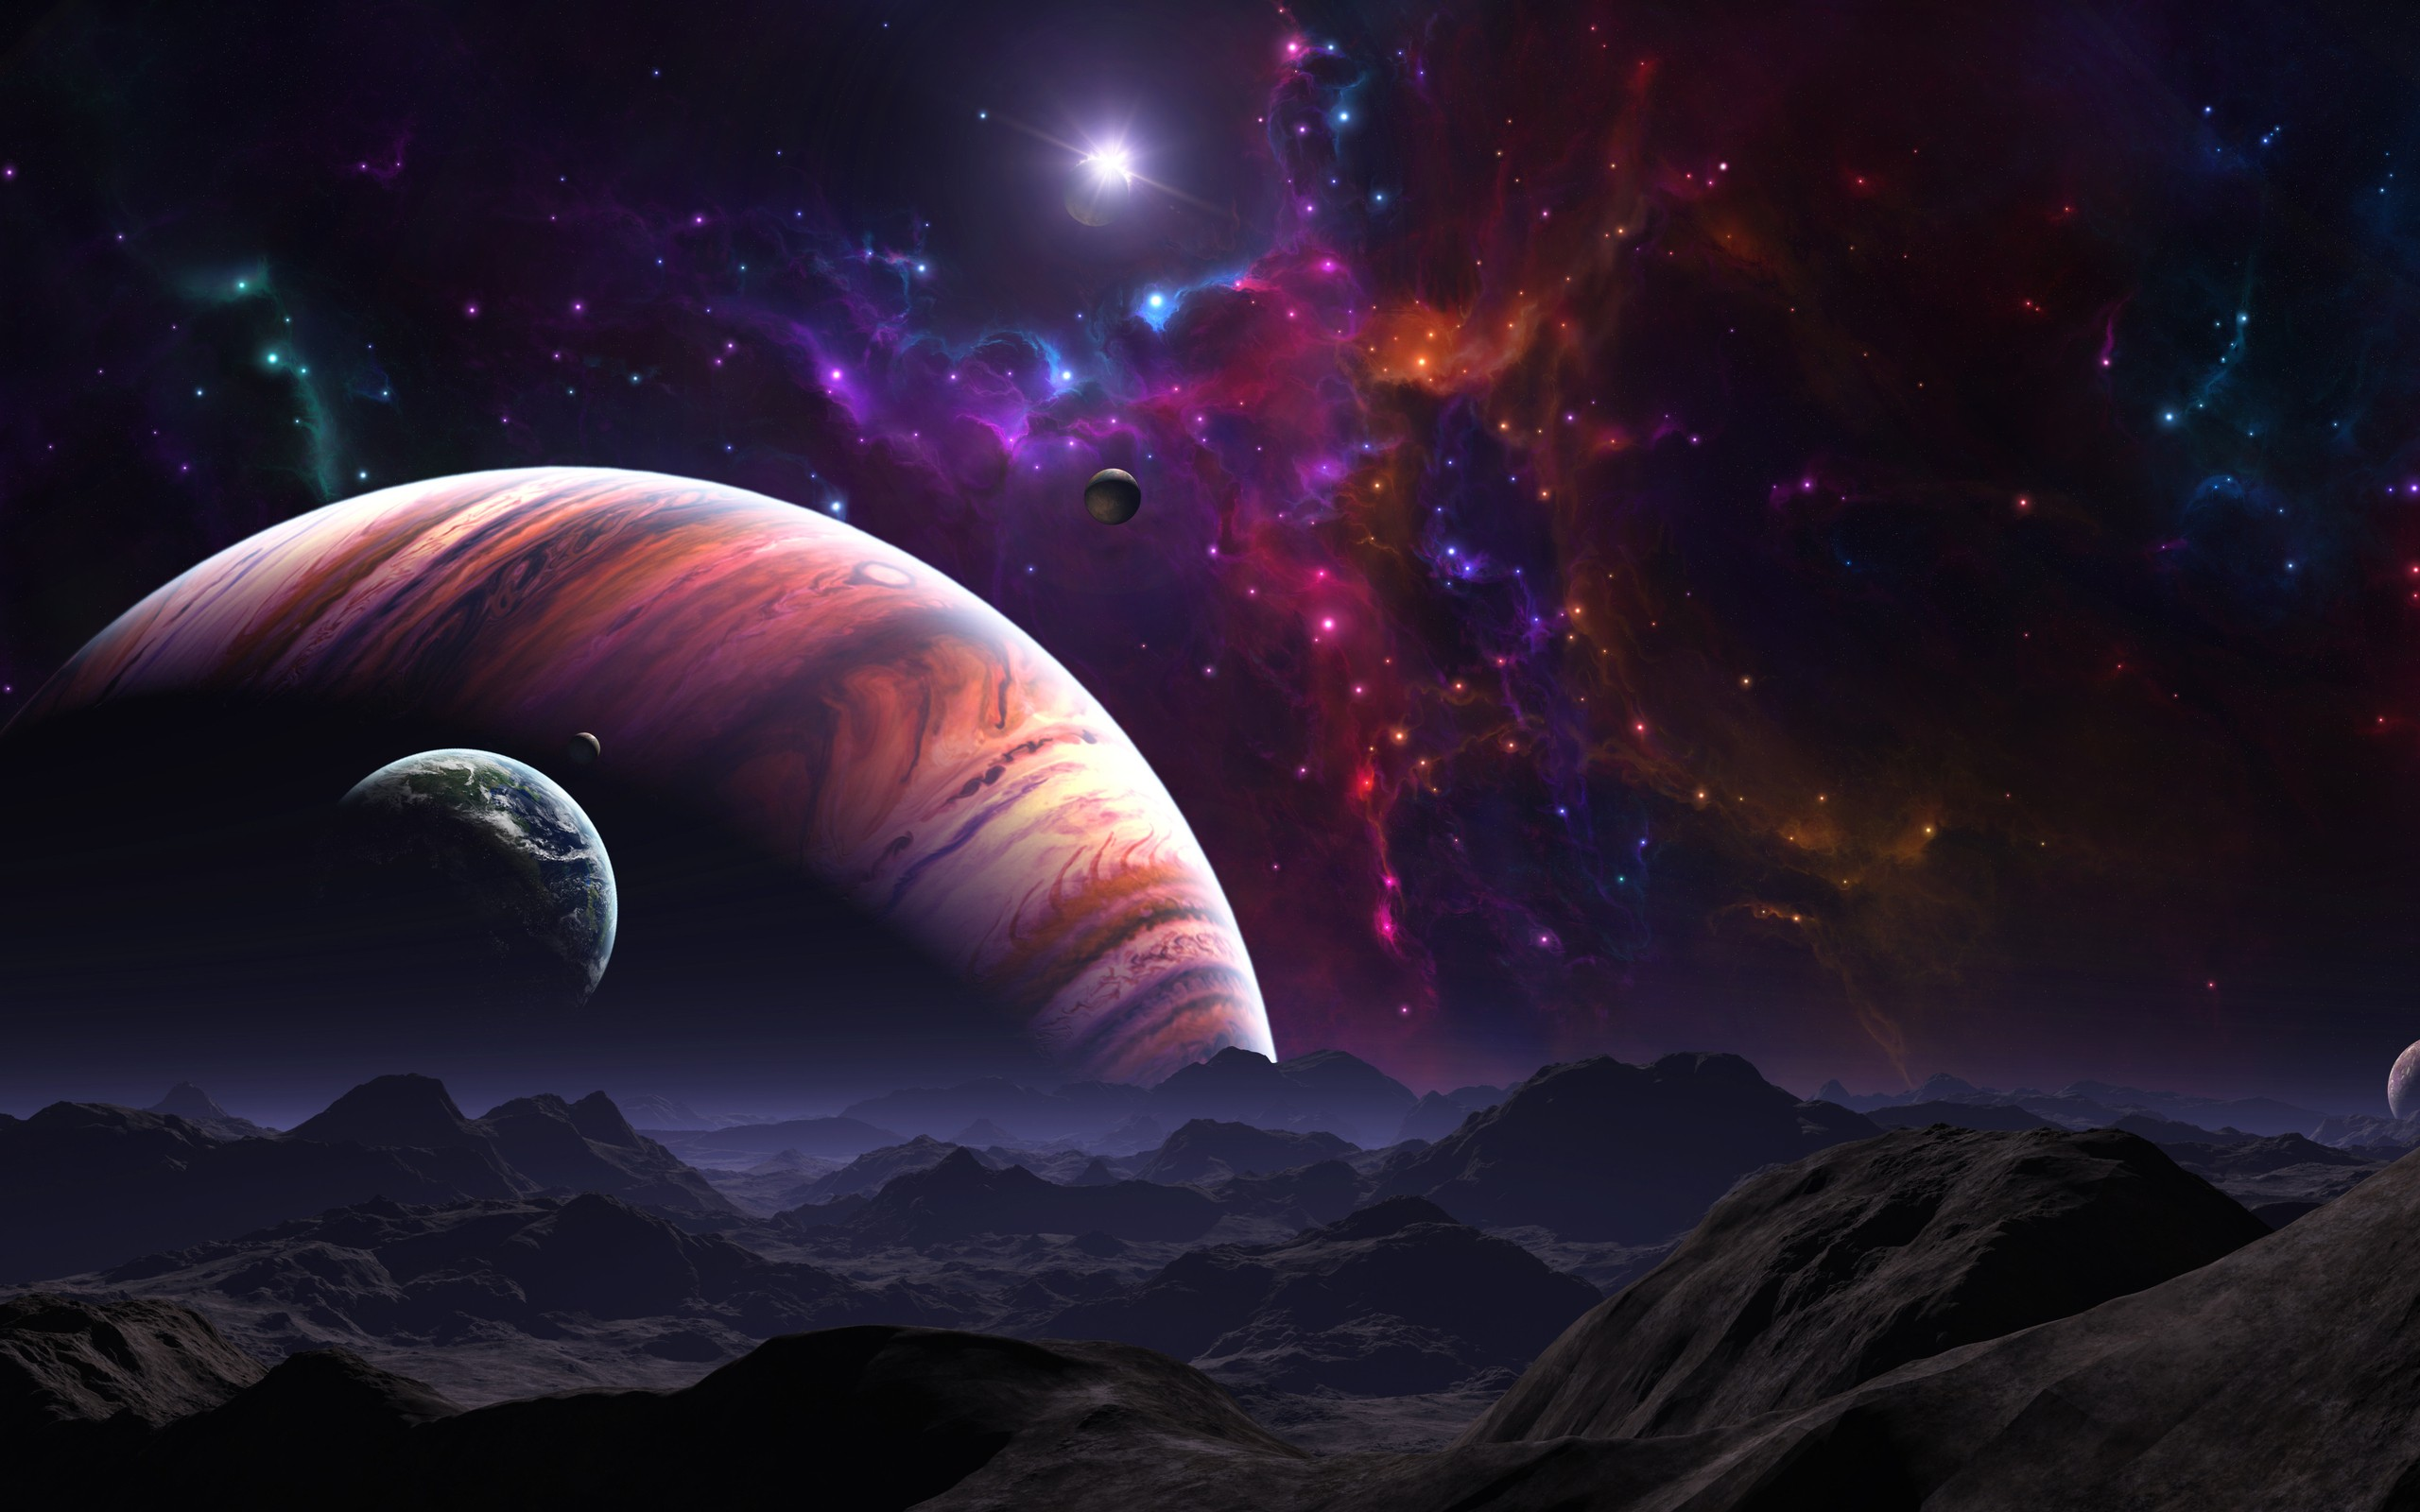 Outer Space Wallpaper 2560x1600 Outer Space Galaxies Planets 2560x1600